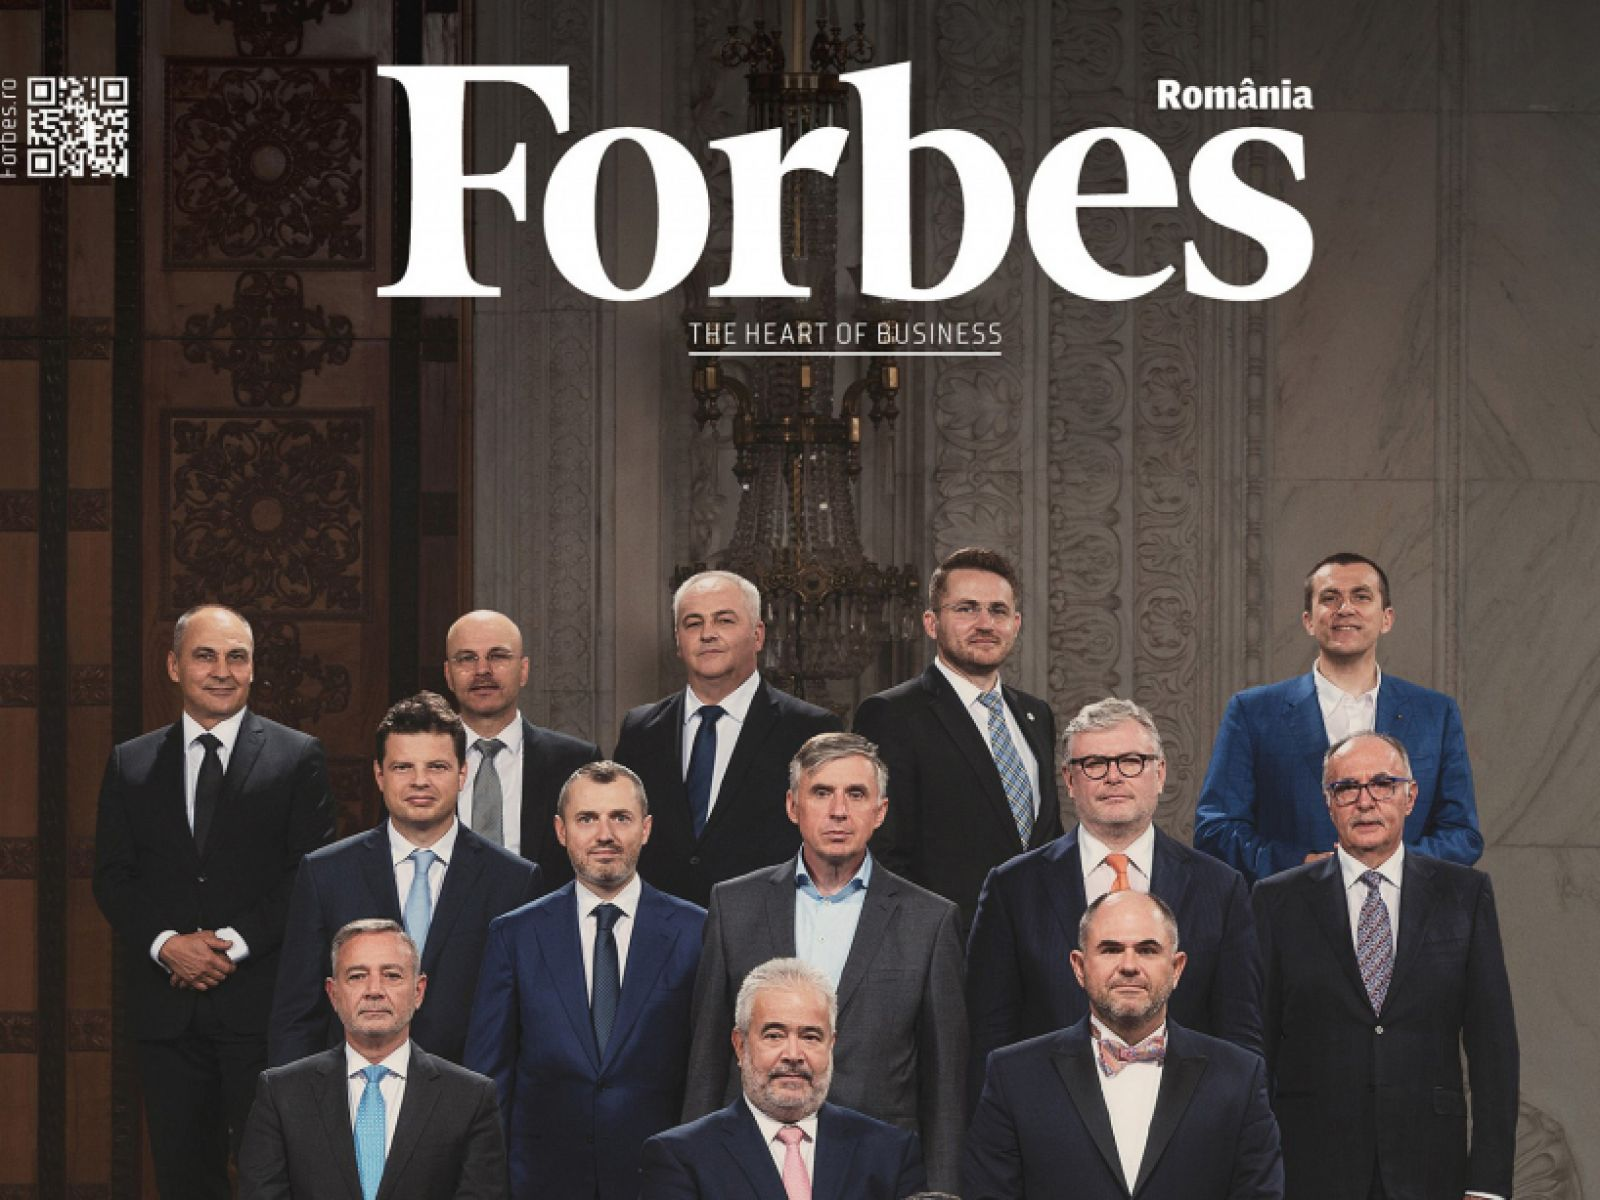 Forbes presents One United Properties founders on 100 Business Hall of Fame